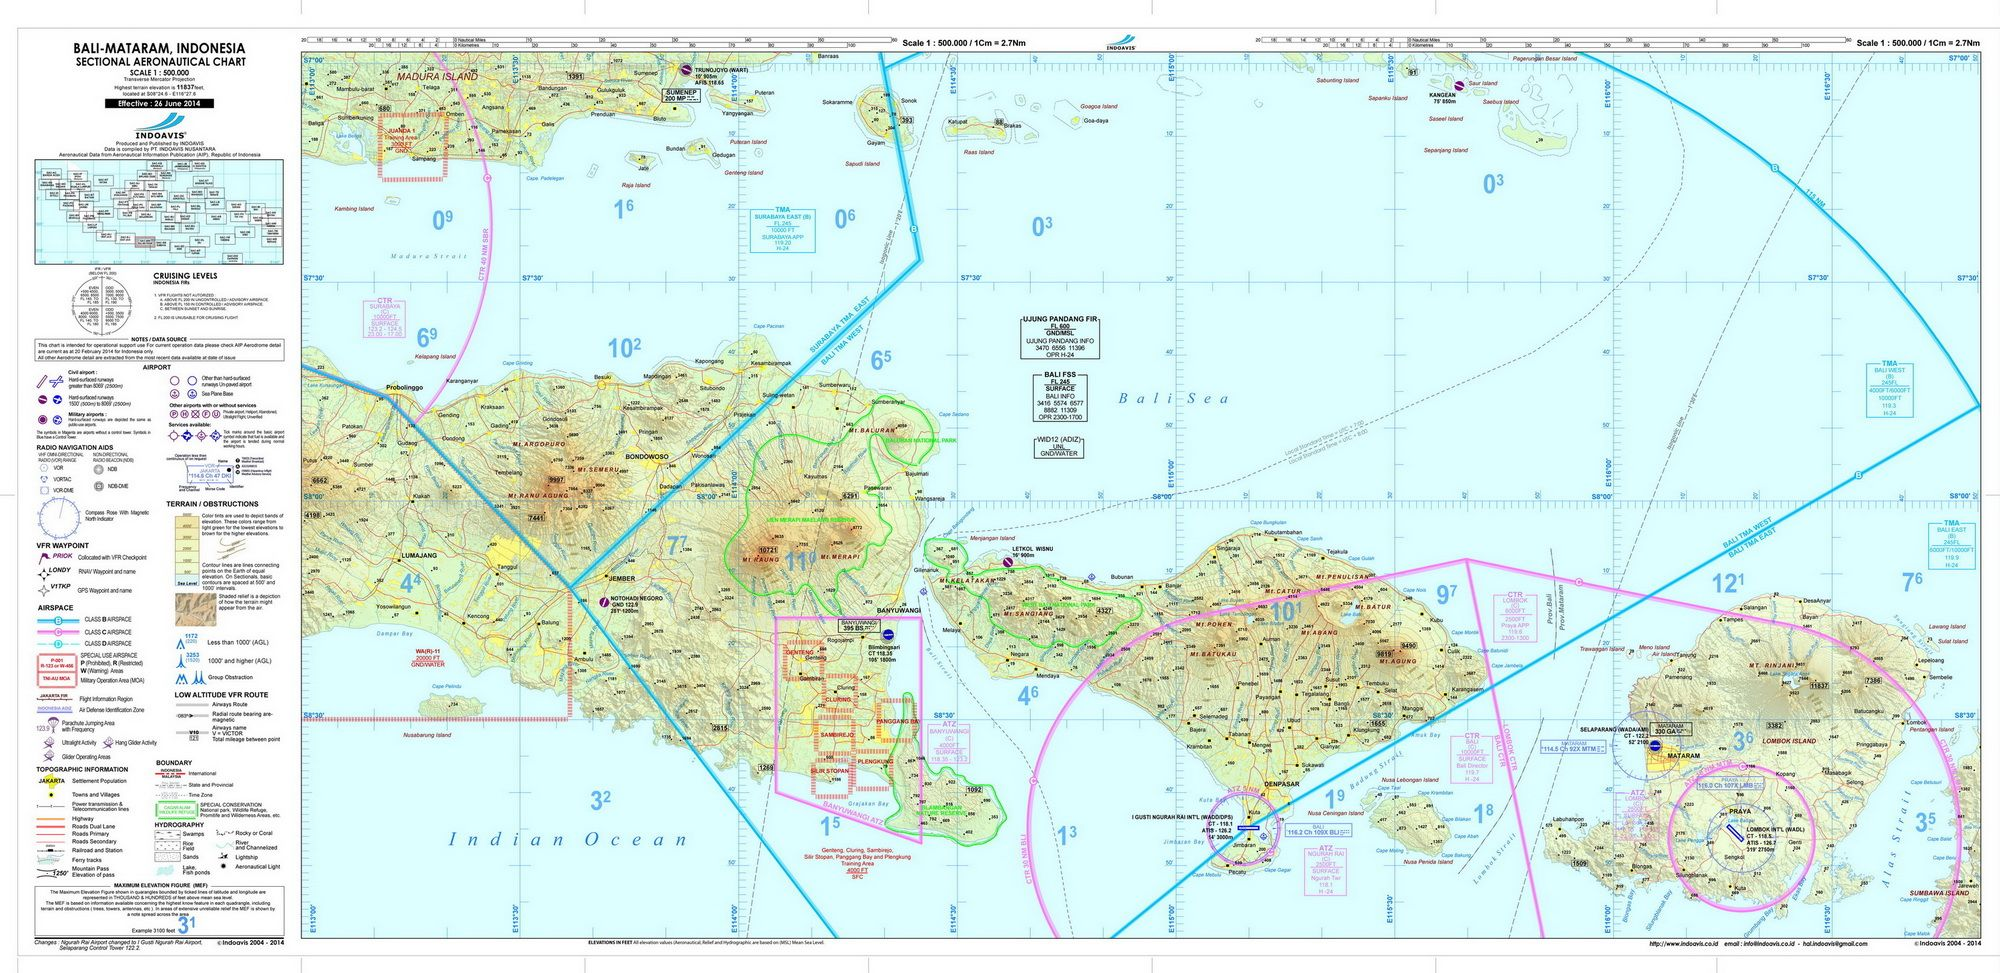 Sectional Aeronautical Chart Sac 1 500 000 West Java Bali Indonesia Produced And Published By Indoavis